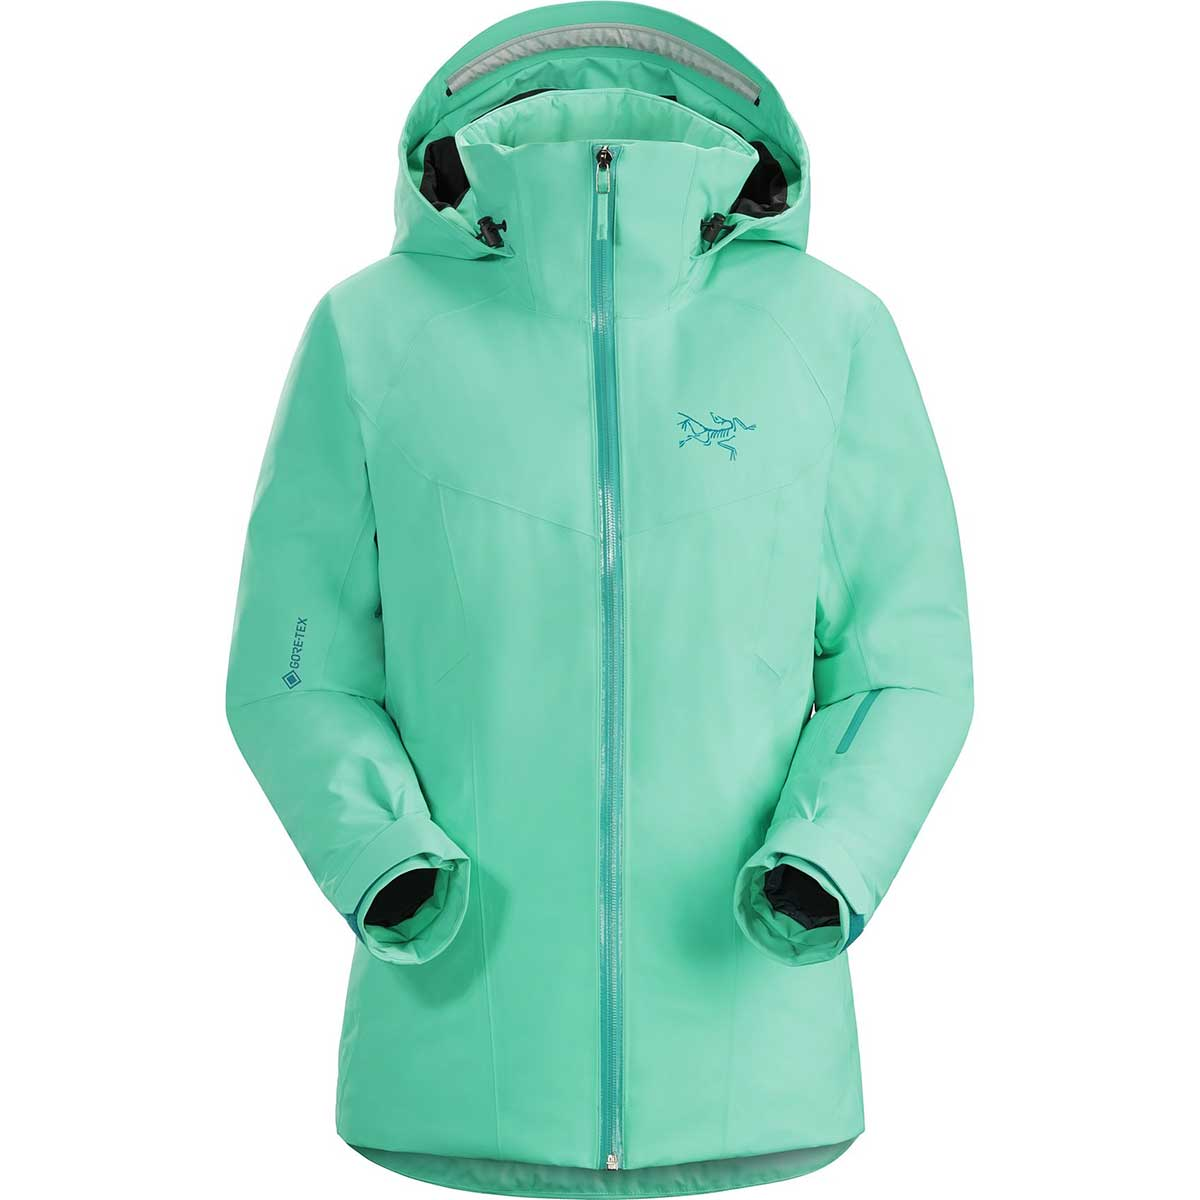 Arcteryx women's Tiya Jacket in Dark Illucinate front view